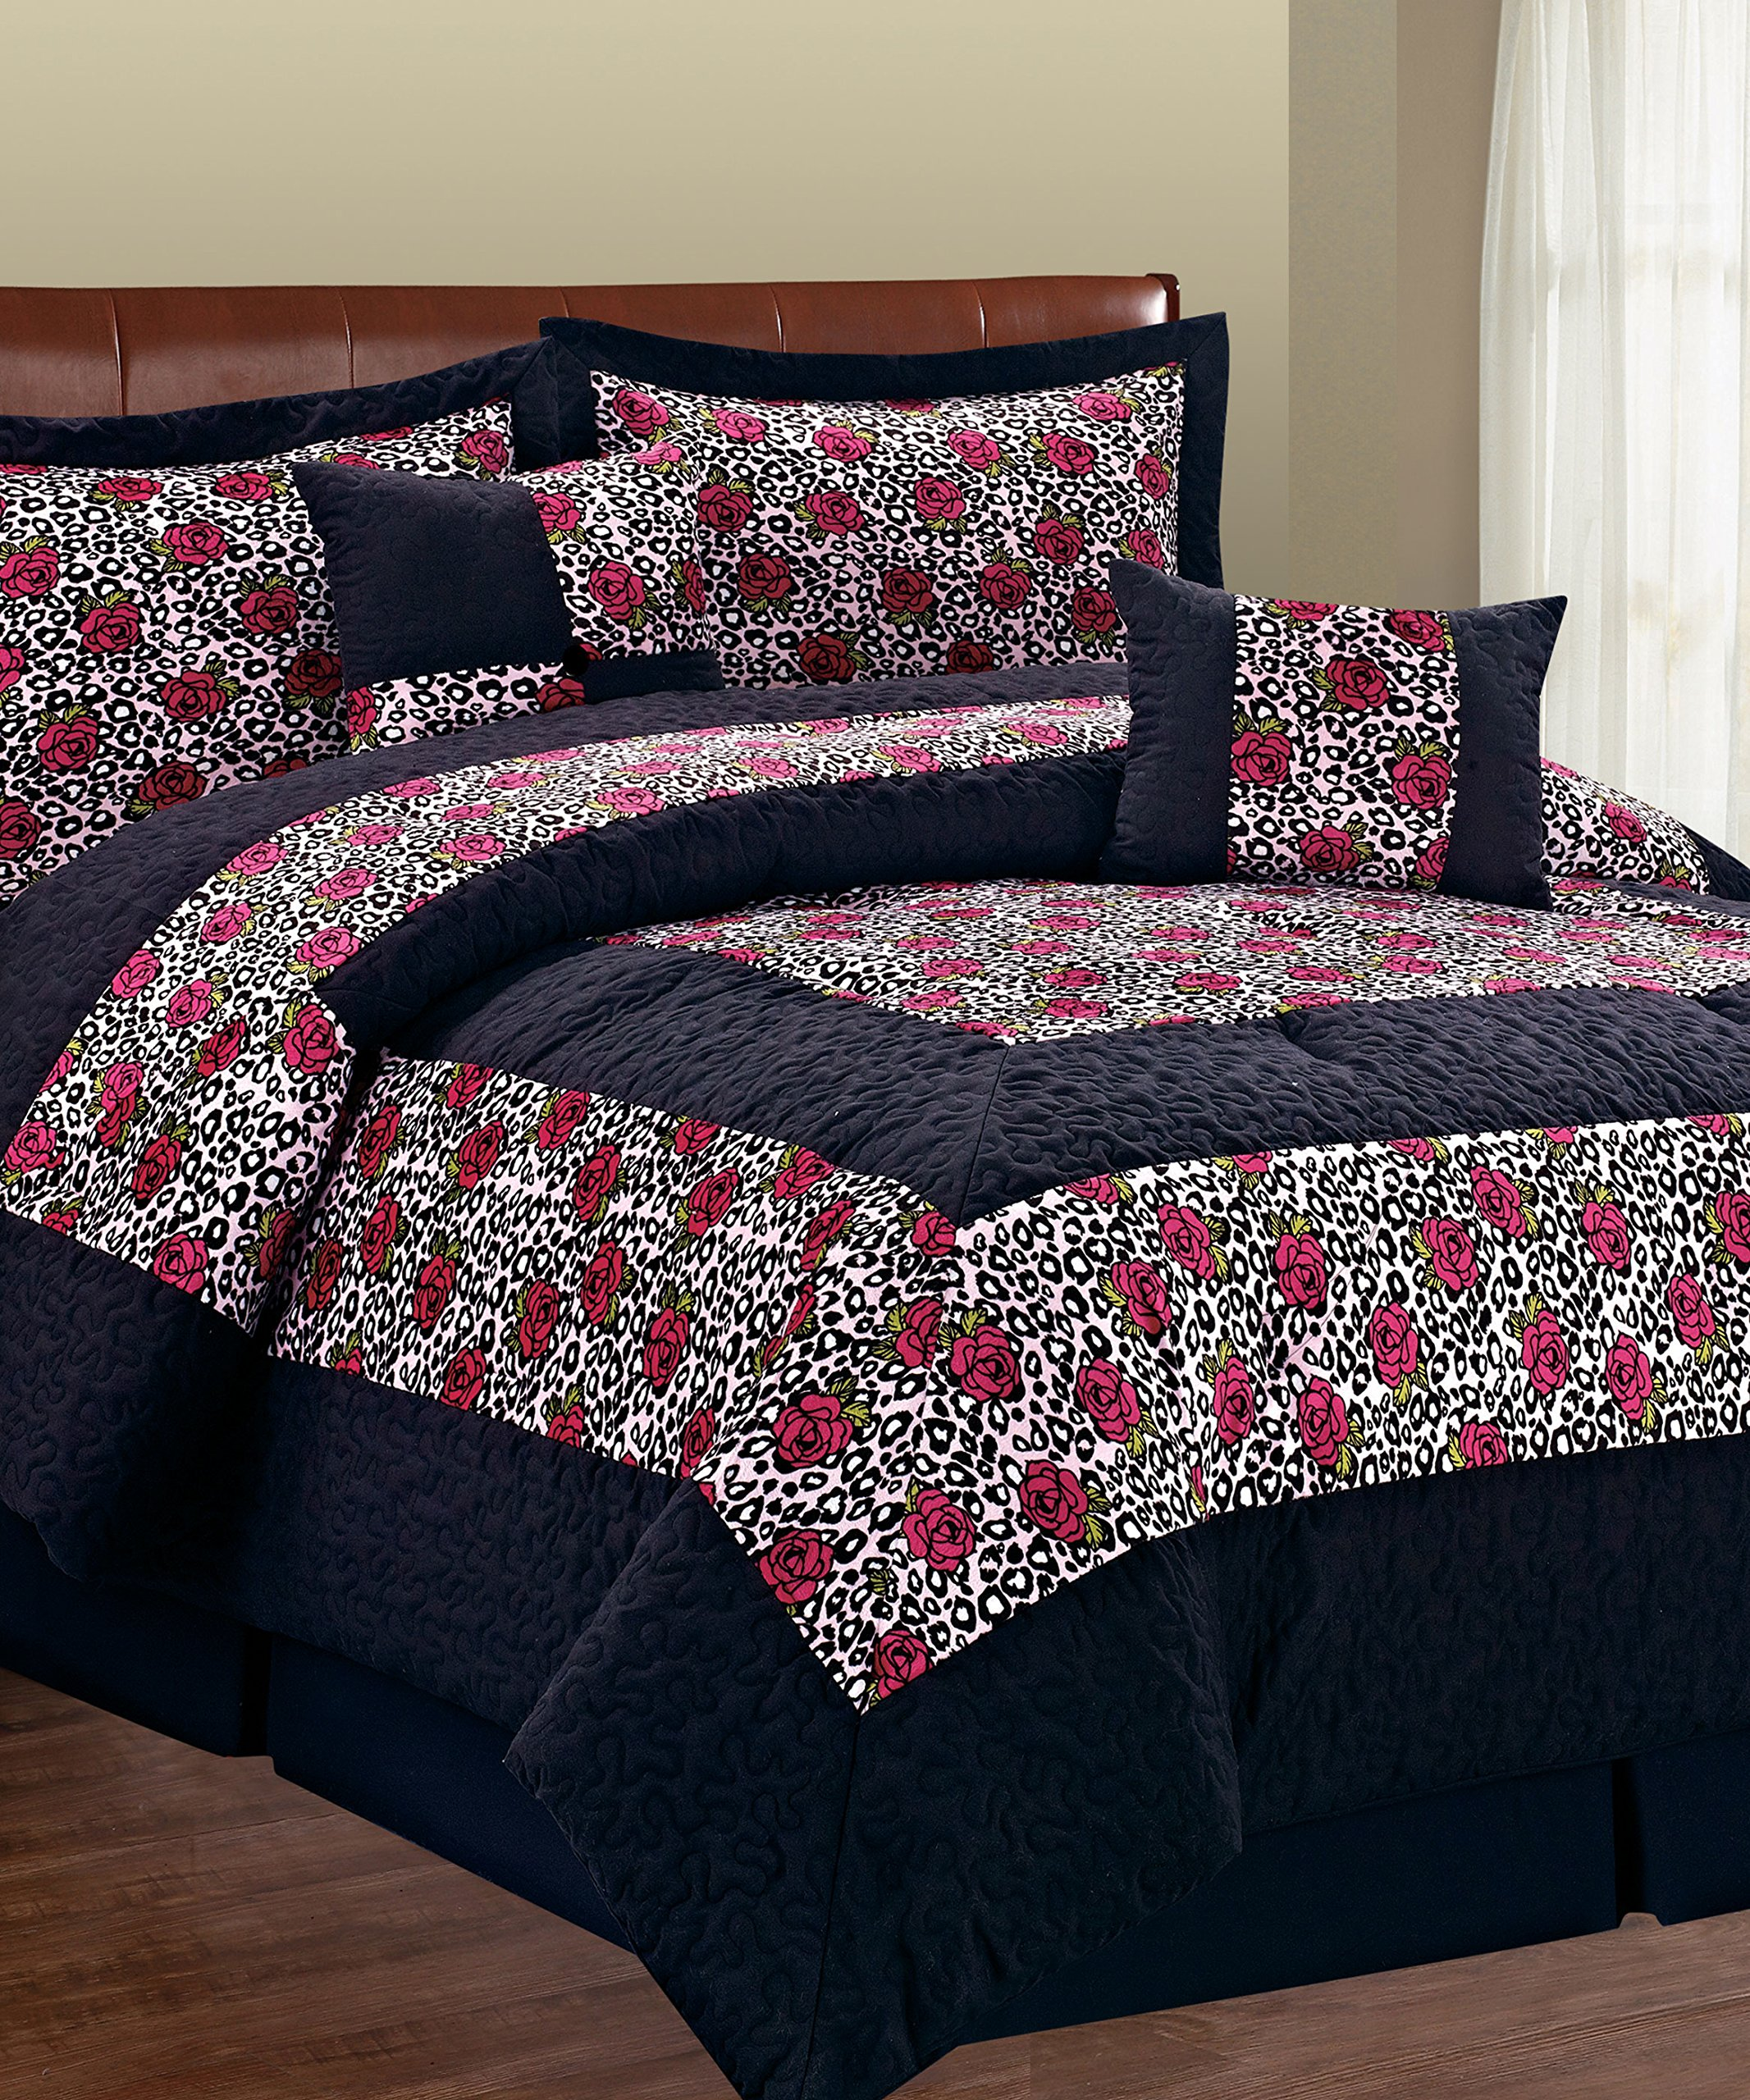 Serenta 6 Piece Animal Style Bed in a Bag Set, Queen, Leopard Flower